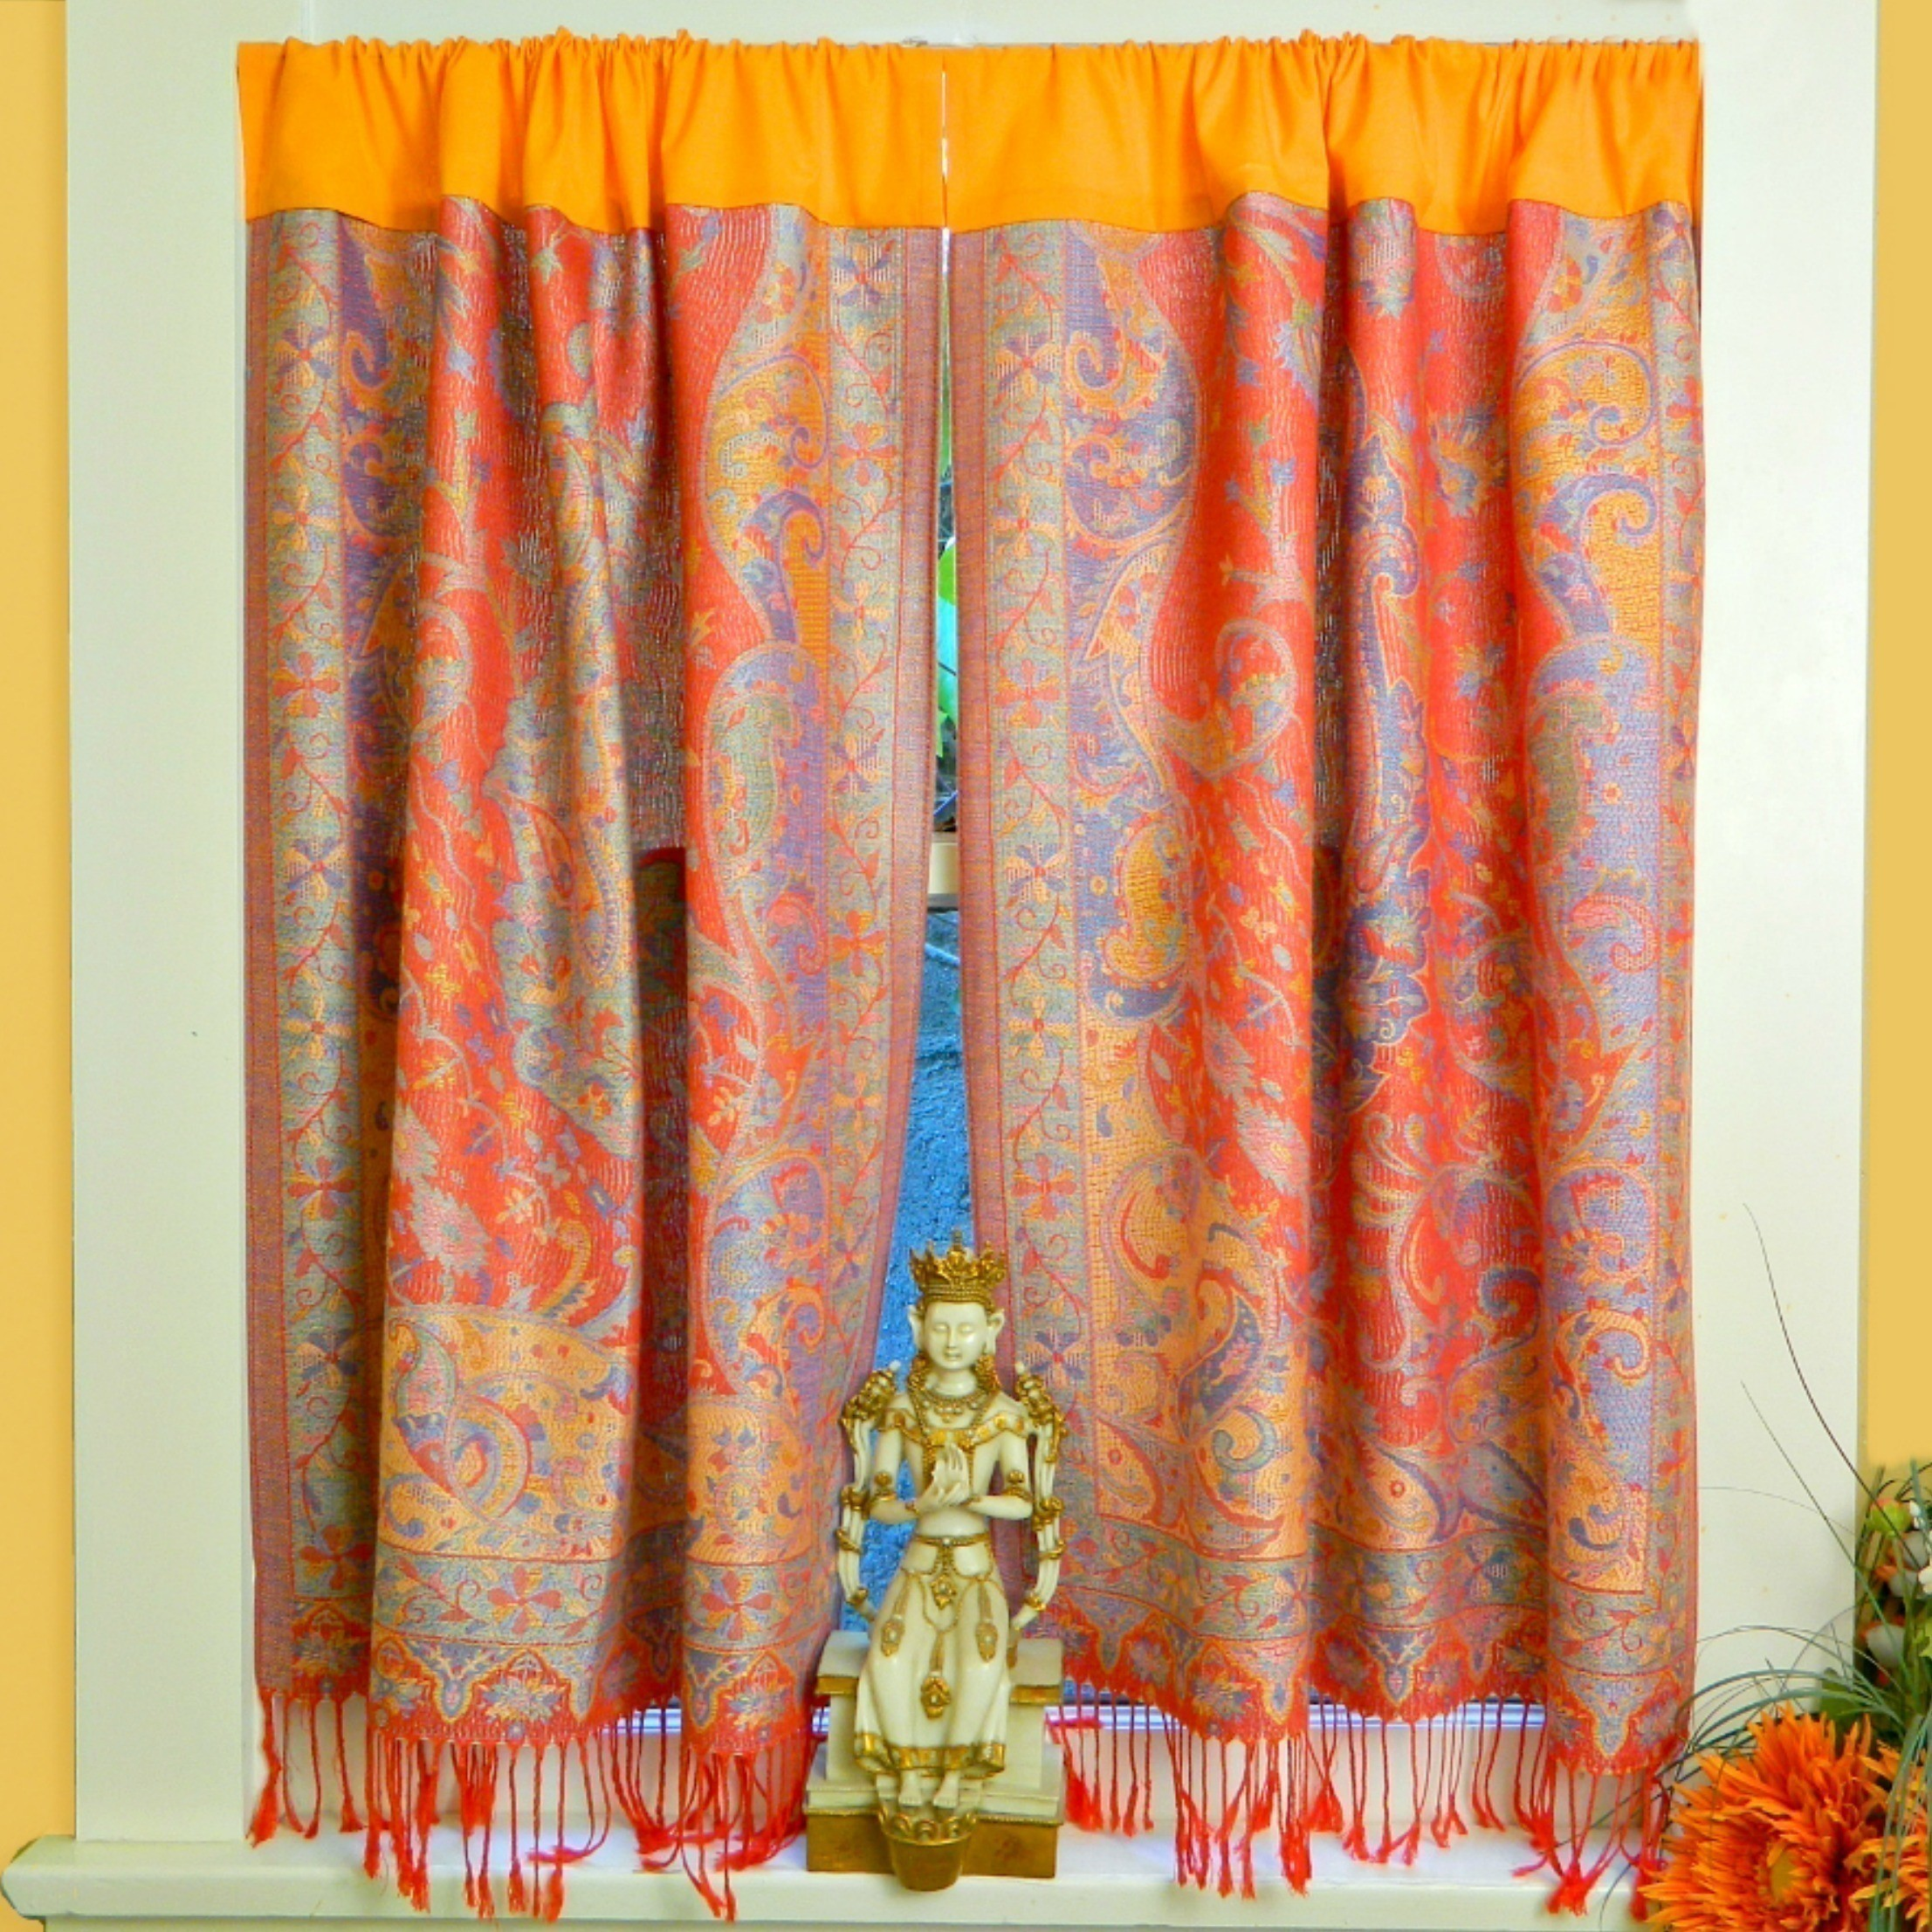 Make Curtains No Sew Boho Curtains How To Make A Curtain Blinds Sewing On